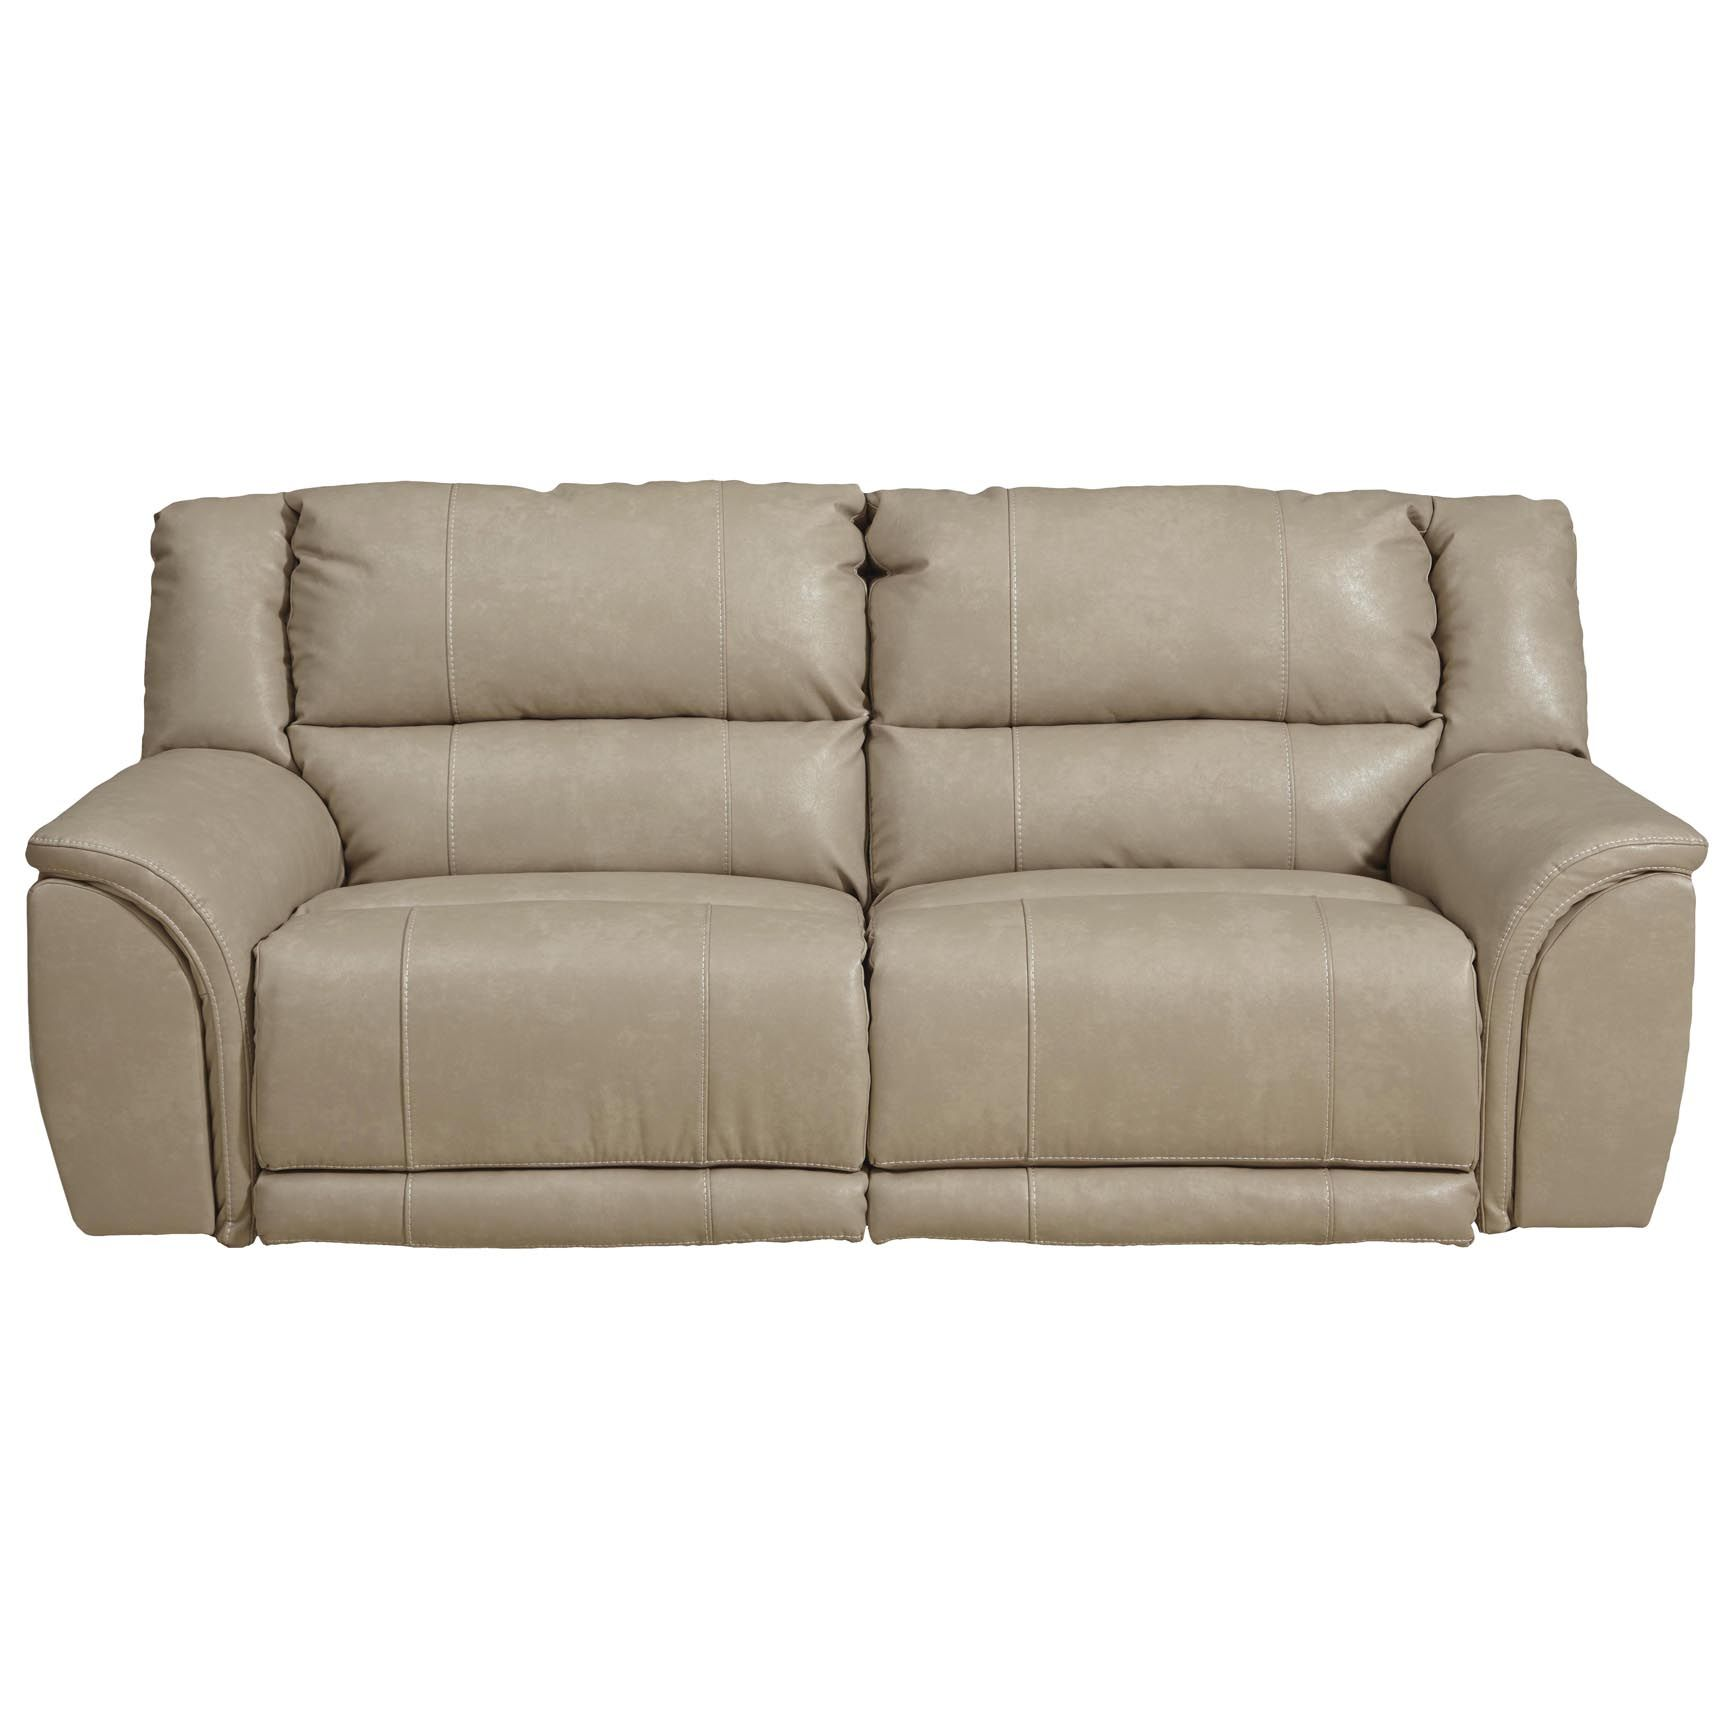 Nolan Power Reclining Sofa Fulton Contemporary Bed Furniture Set Catnapper Leather Review Home Co